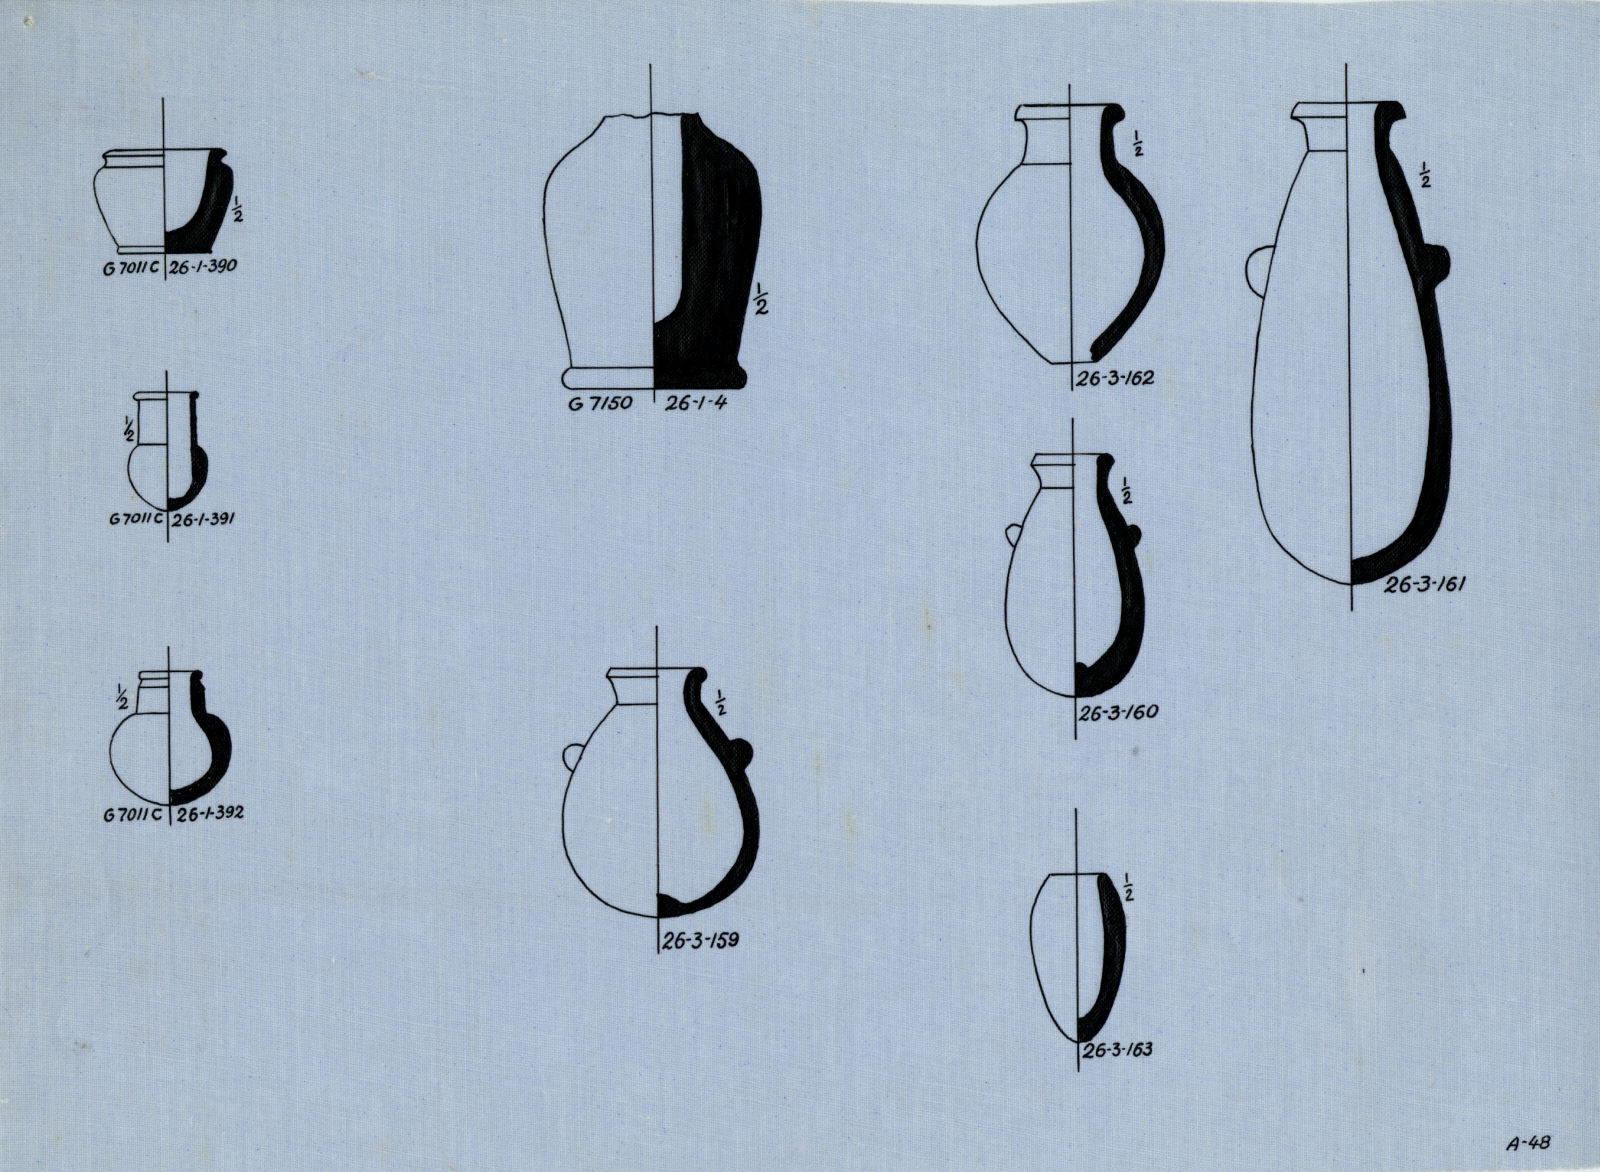 Drawings: Miniature vessels, stone (various) from G 7011, Shaft C, G 7141, G 7150